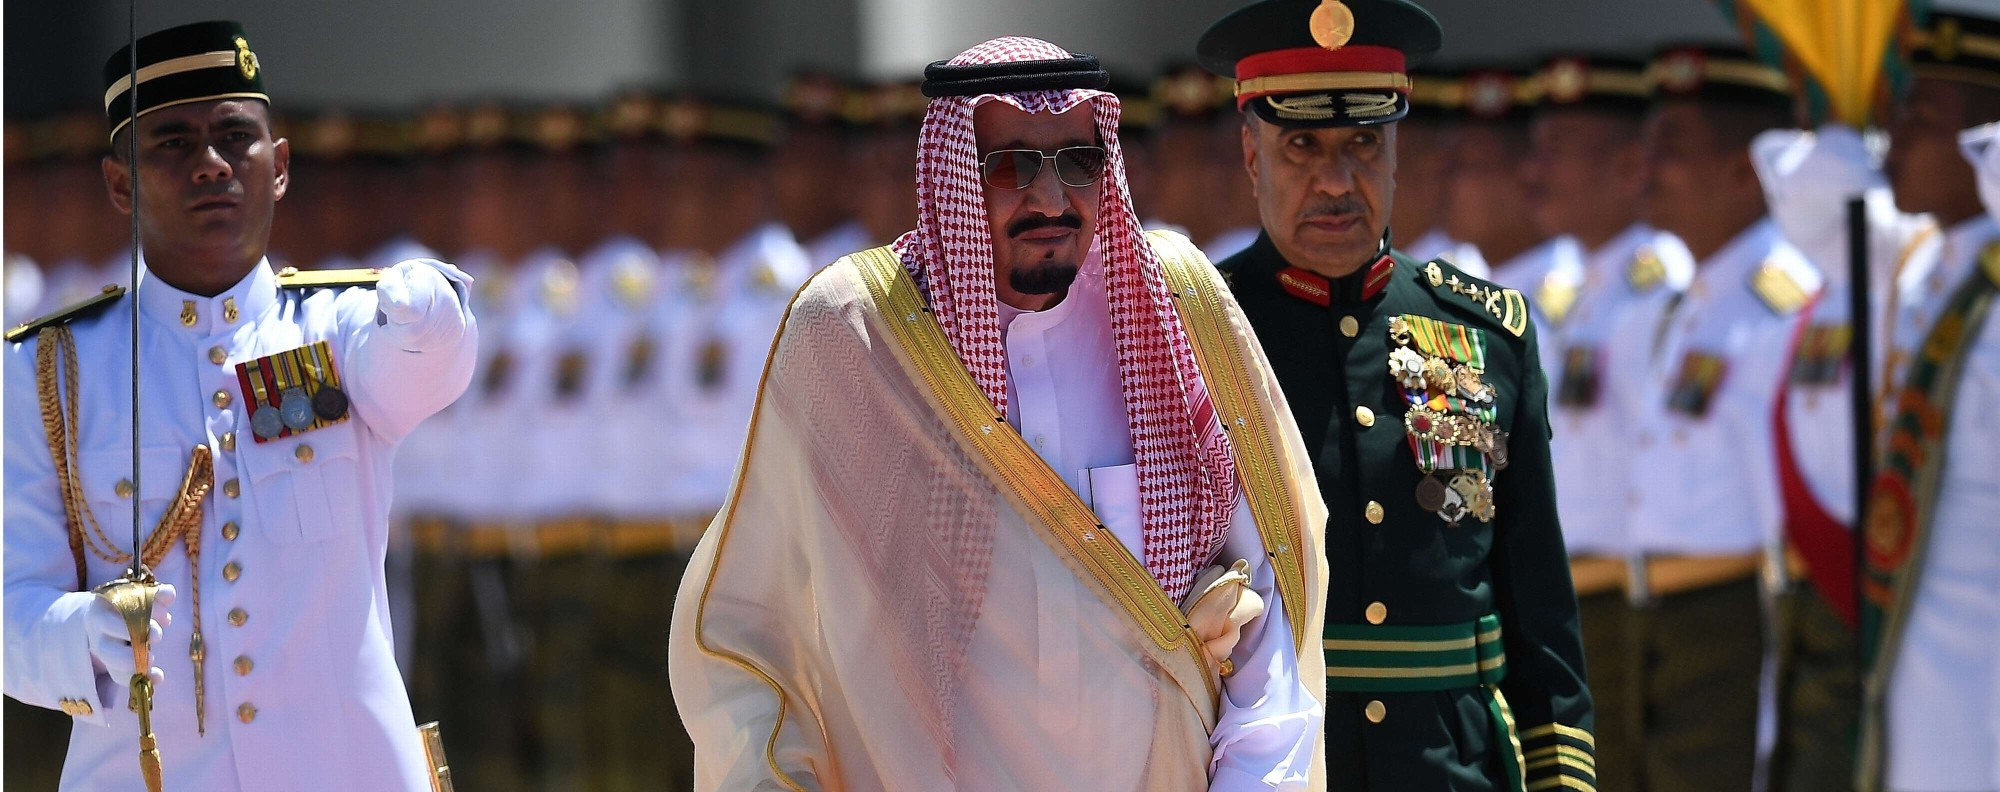 Saudi King Salman is welcomed to Kuala Lumpur. Photo: AFP